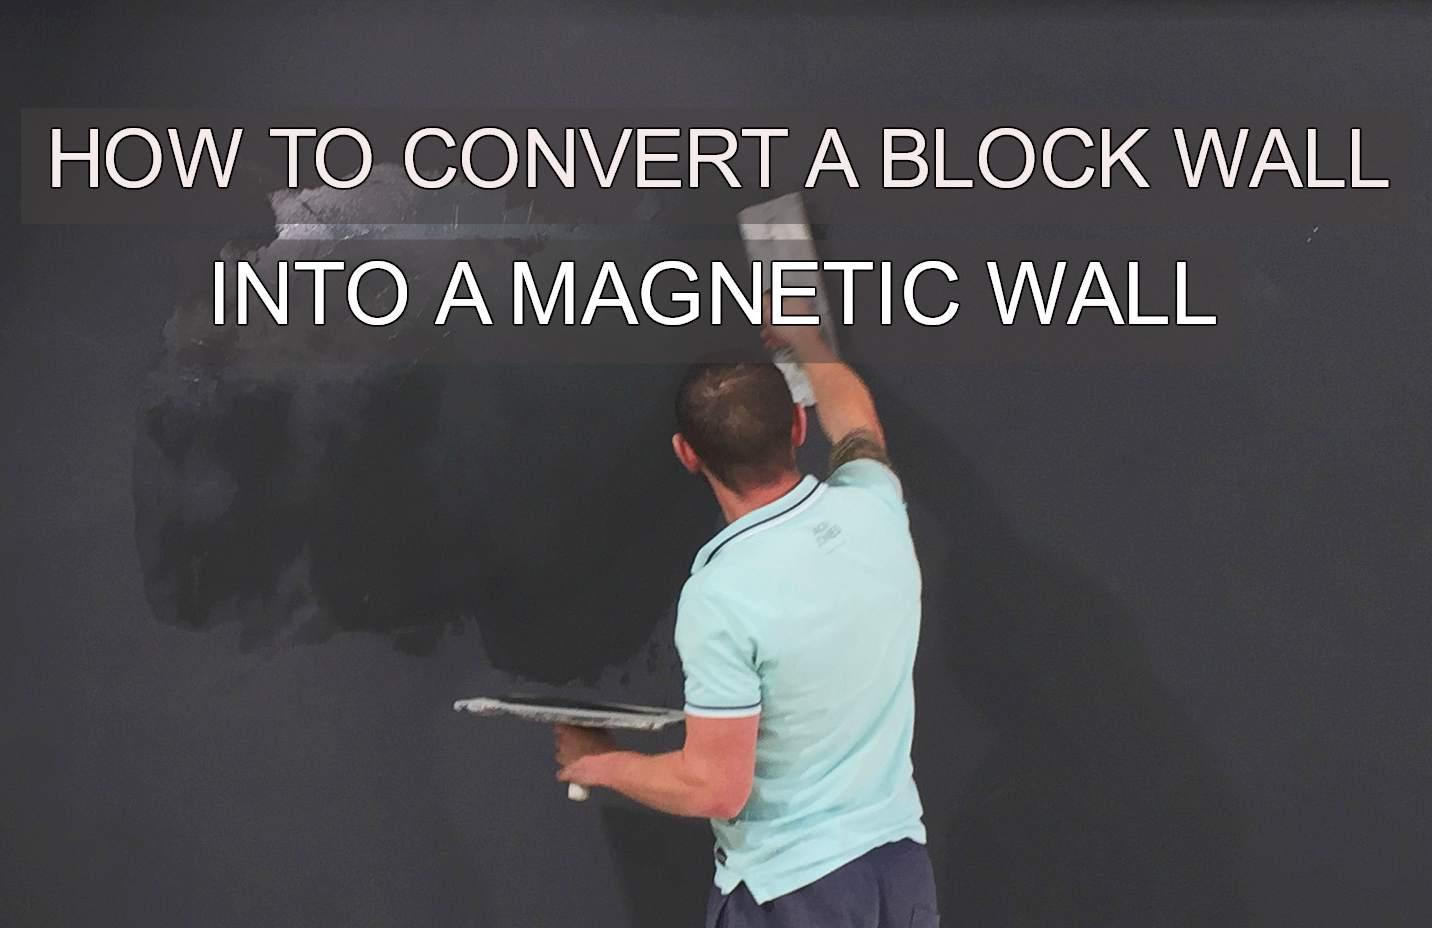 magneticplasterapplication magnetic wall